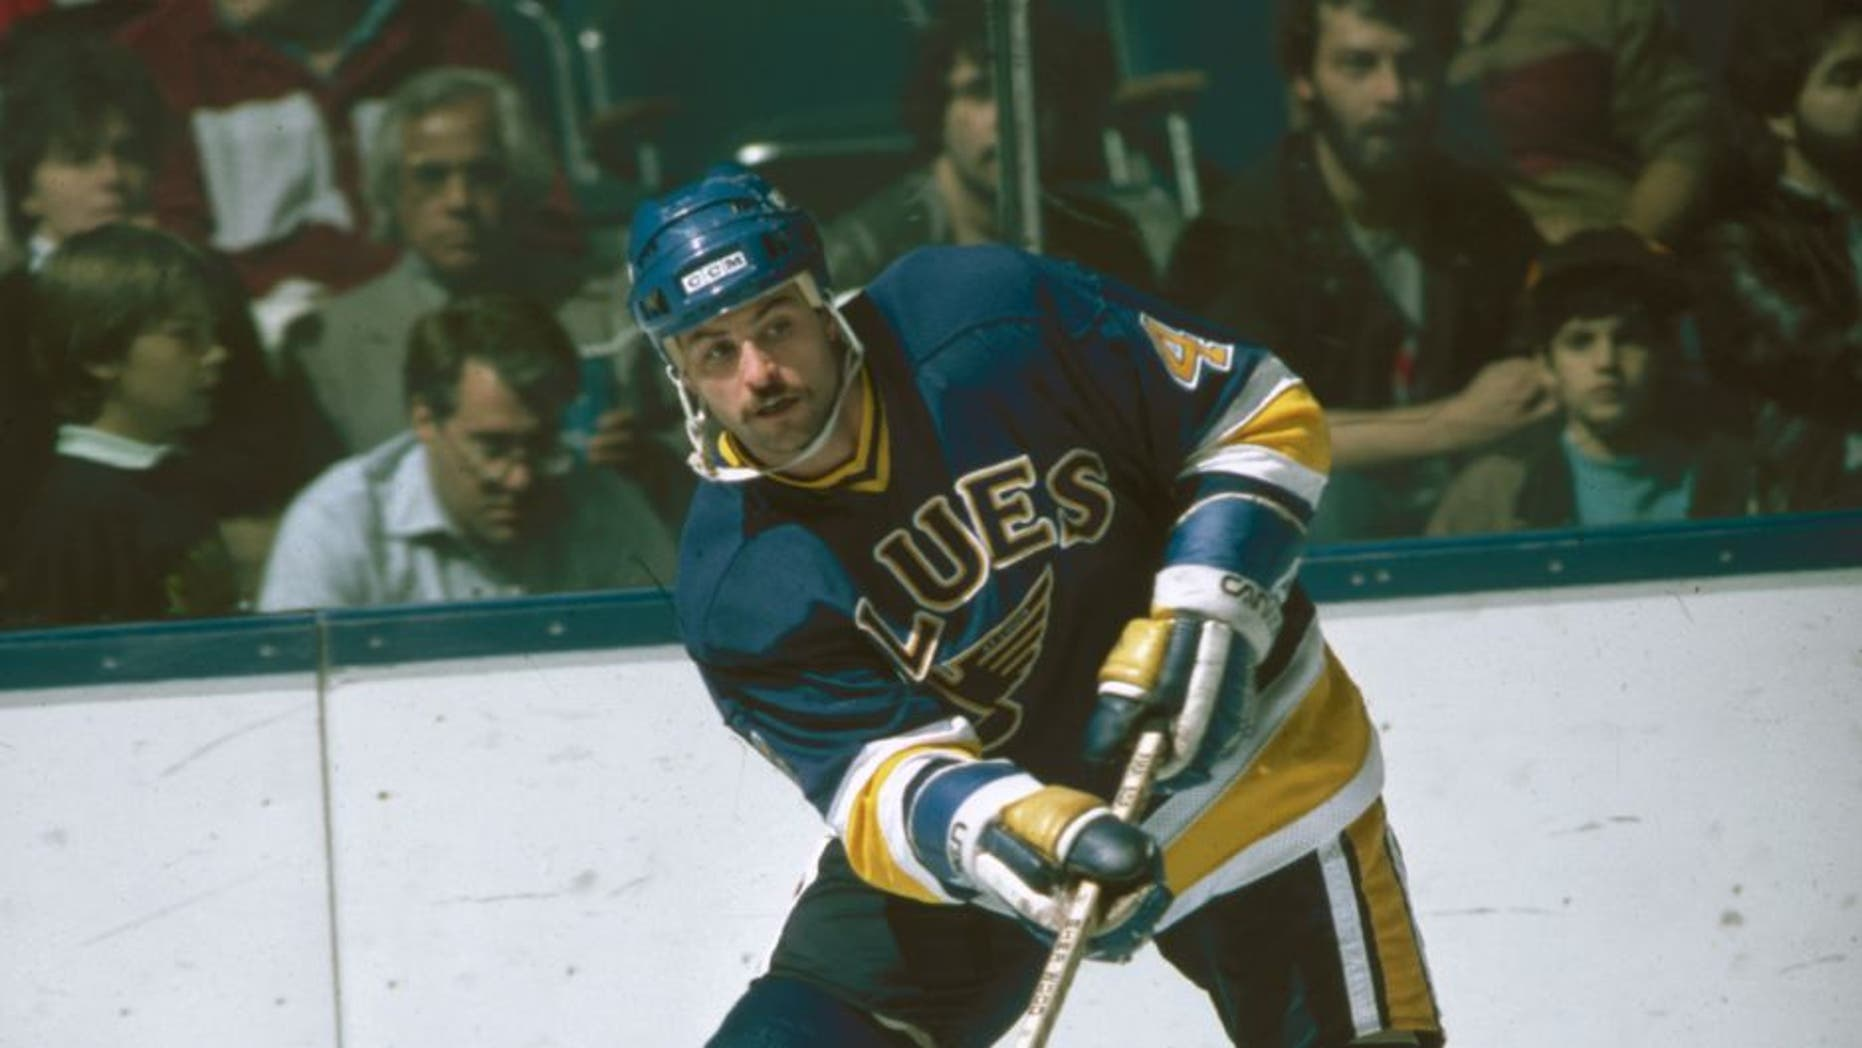 American ice hockey player Rik Wilson of the St. Louis Blues on the ice during a game, November 1984. (Photo by Bruce Bennett Studios/Getty Images)